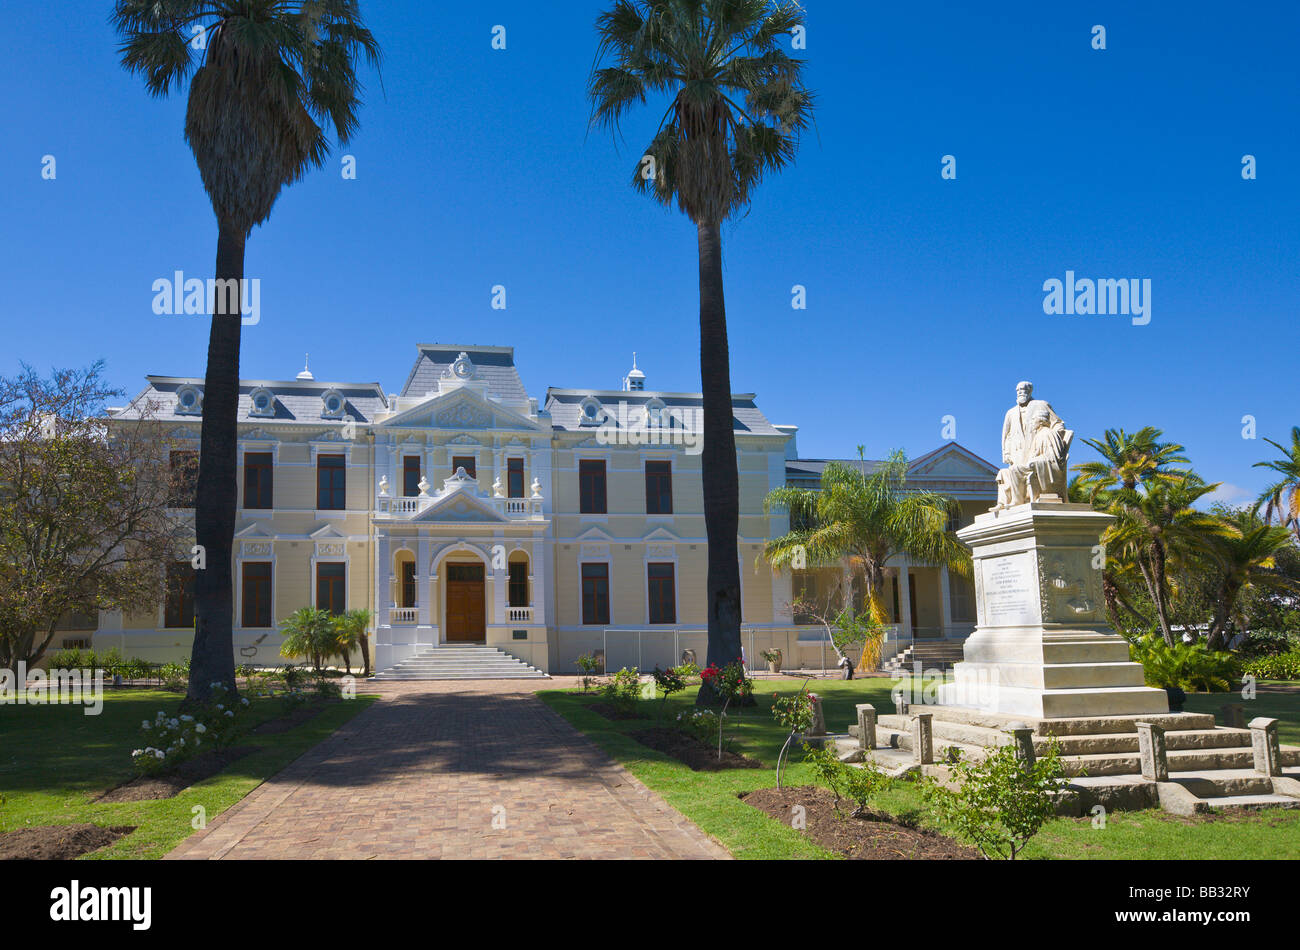 Theology College, Stellenbosch, 'South Africa' - Stock Image